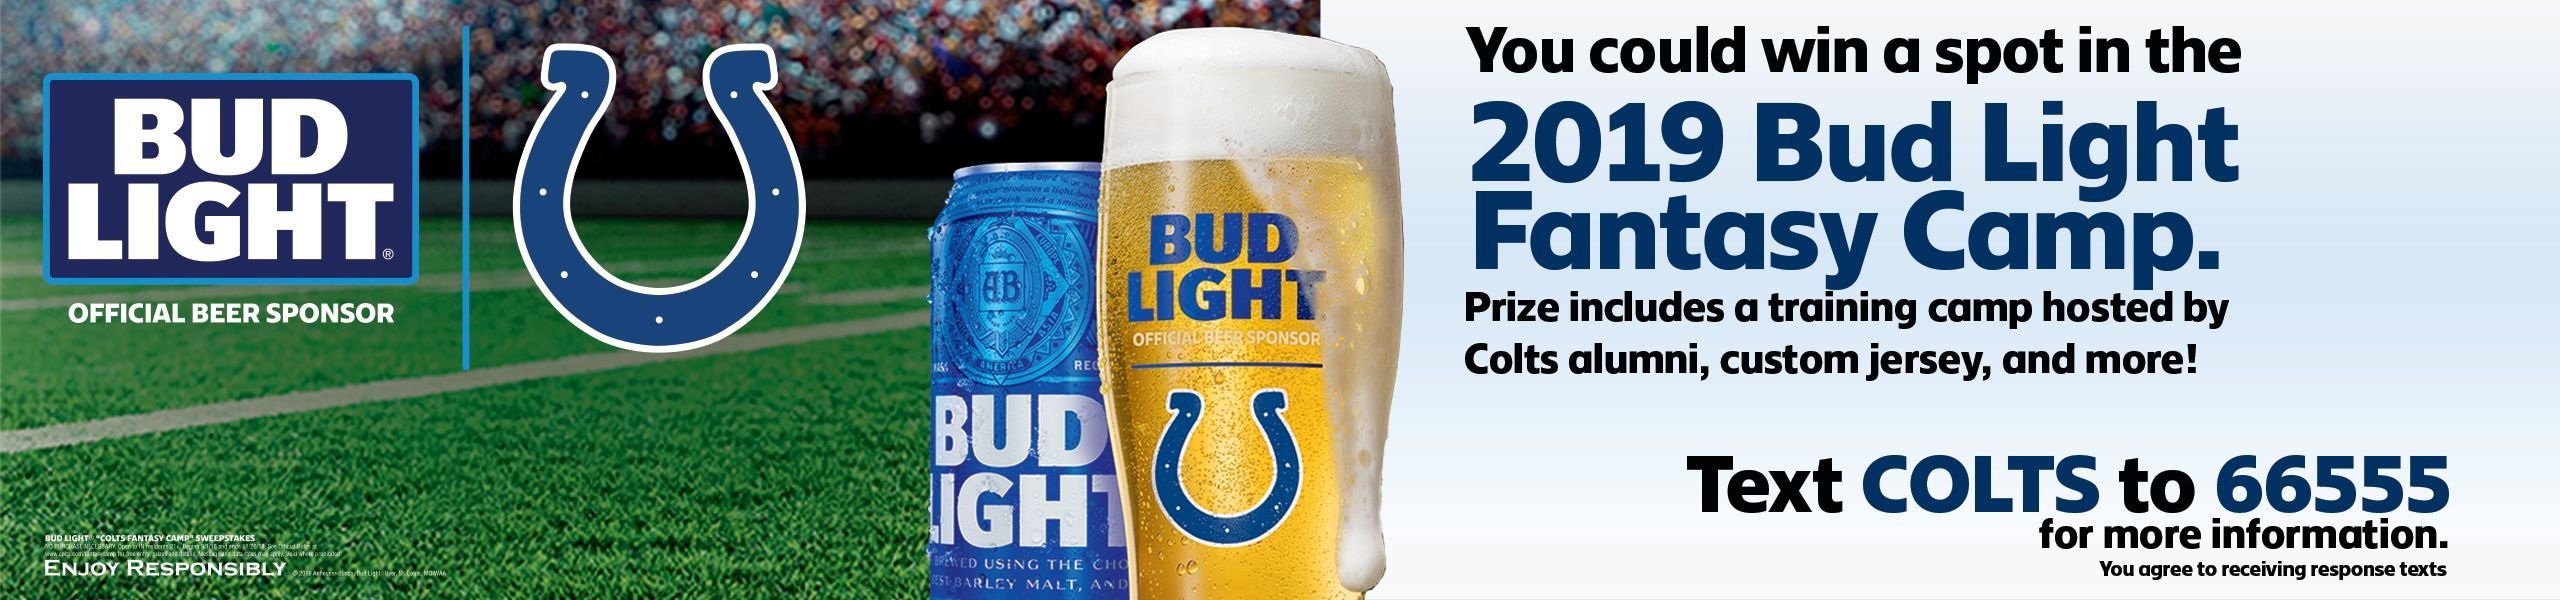 Bud Light: Official Beer Sponsor. You could win a spot in the 2019 Bud Light Fantasy Camp. Prize includes a training camp hosted by Colts alumni, custom jersey, and more! Text COLTs to 66555 for more information.